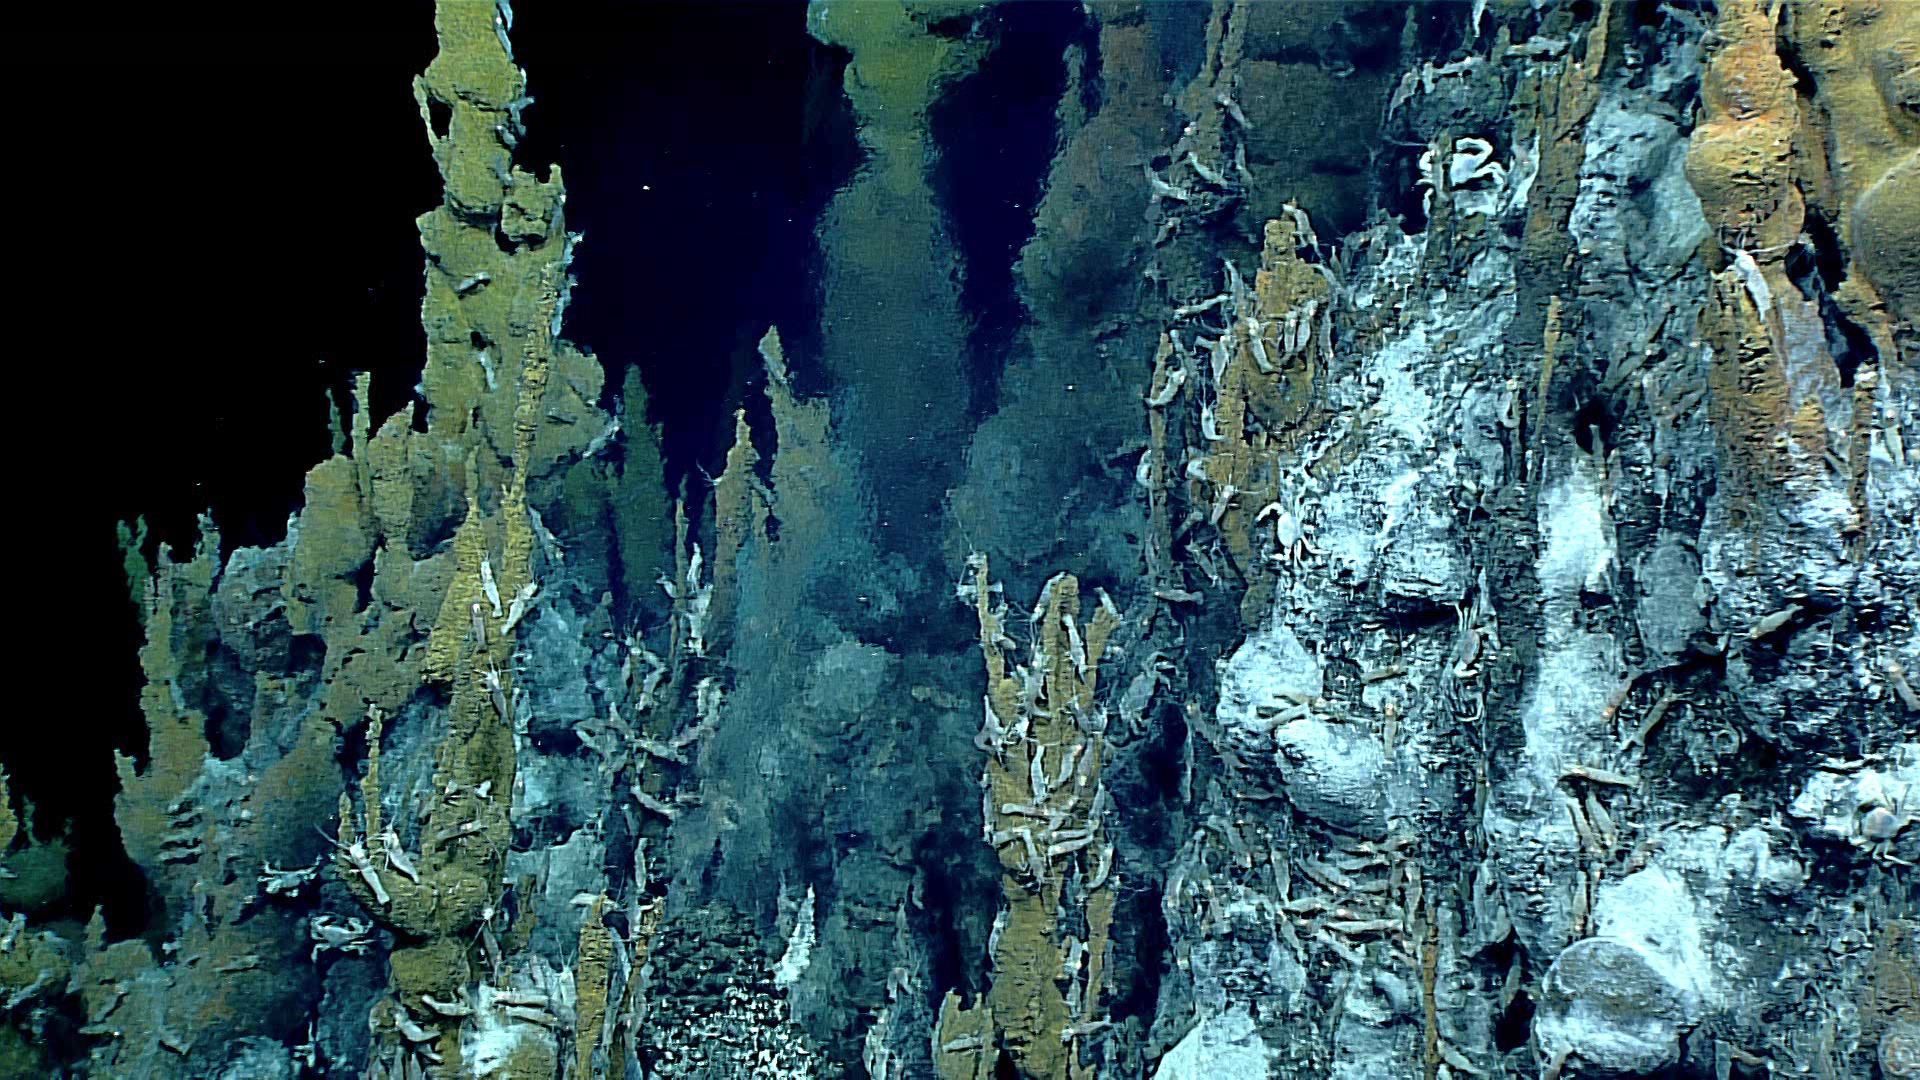 Scientists create precursor to life in thermal vent experiment